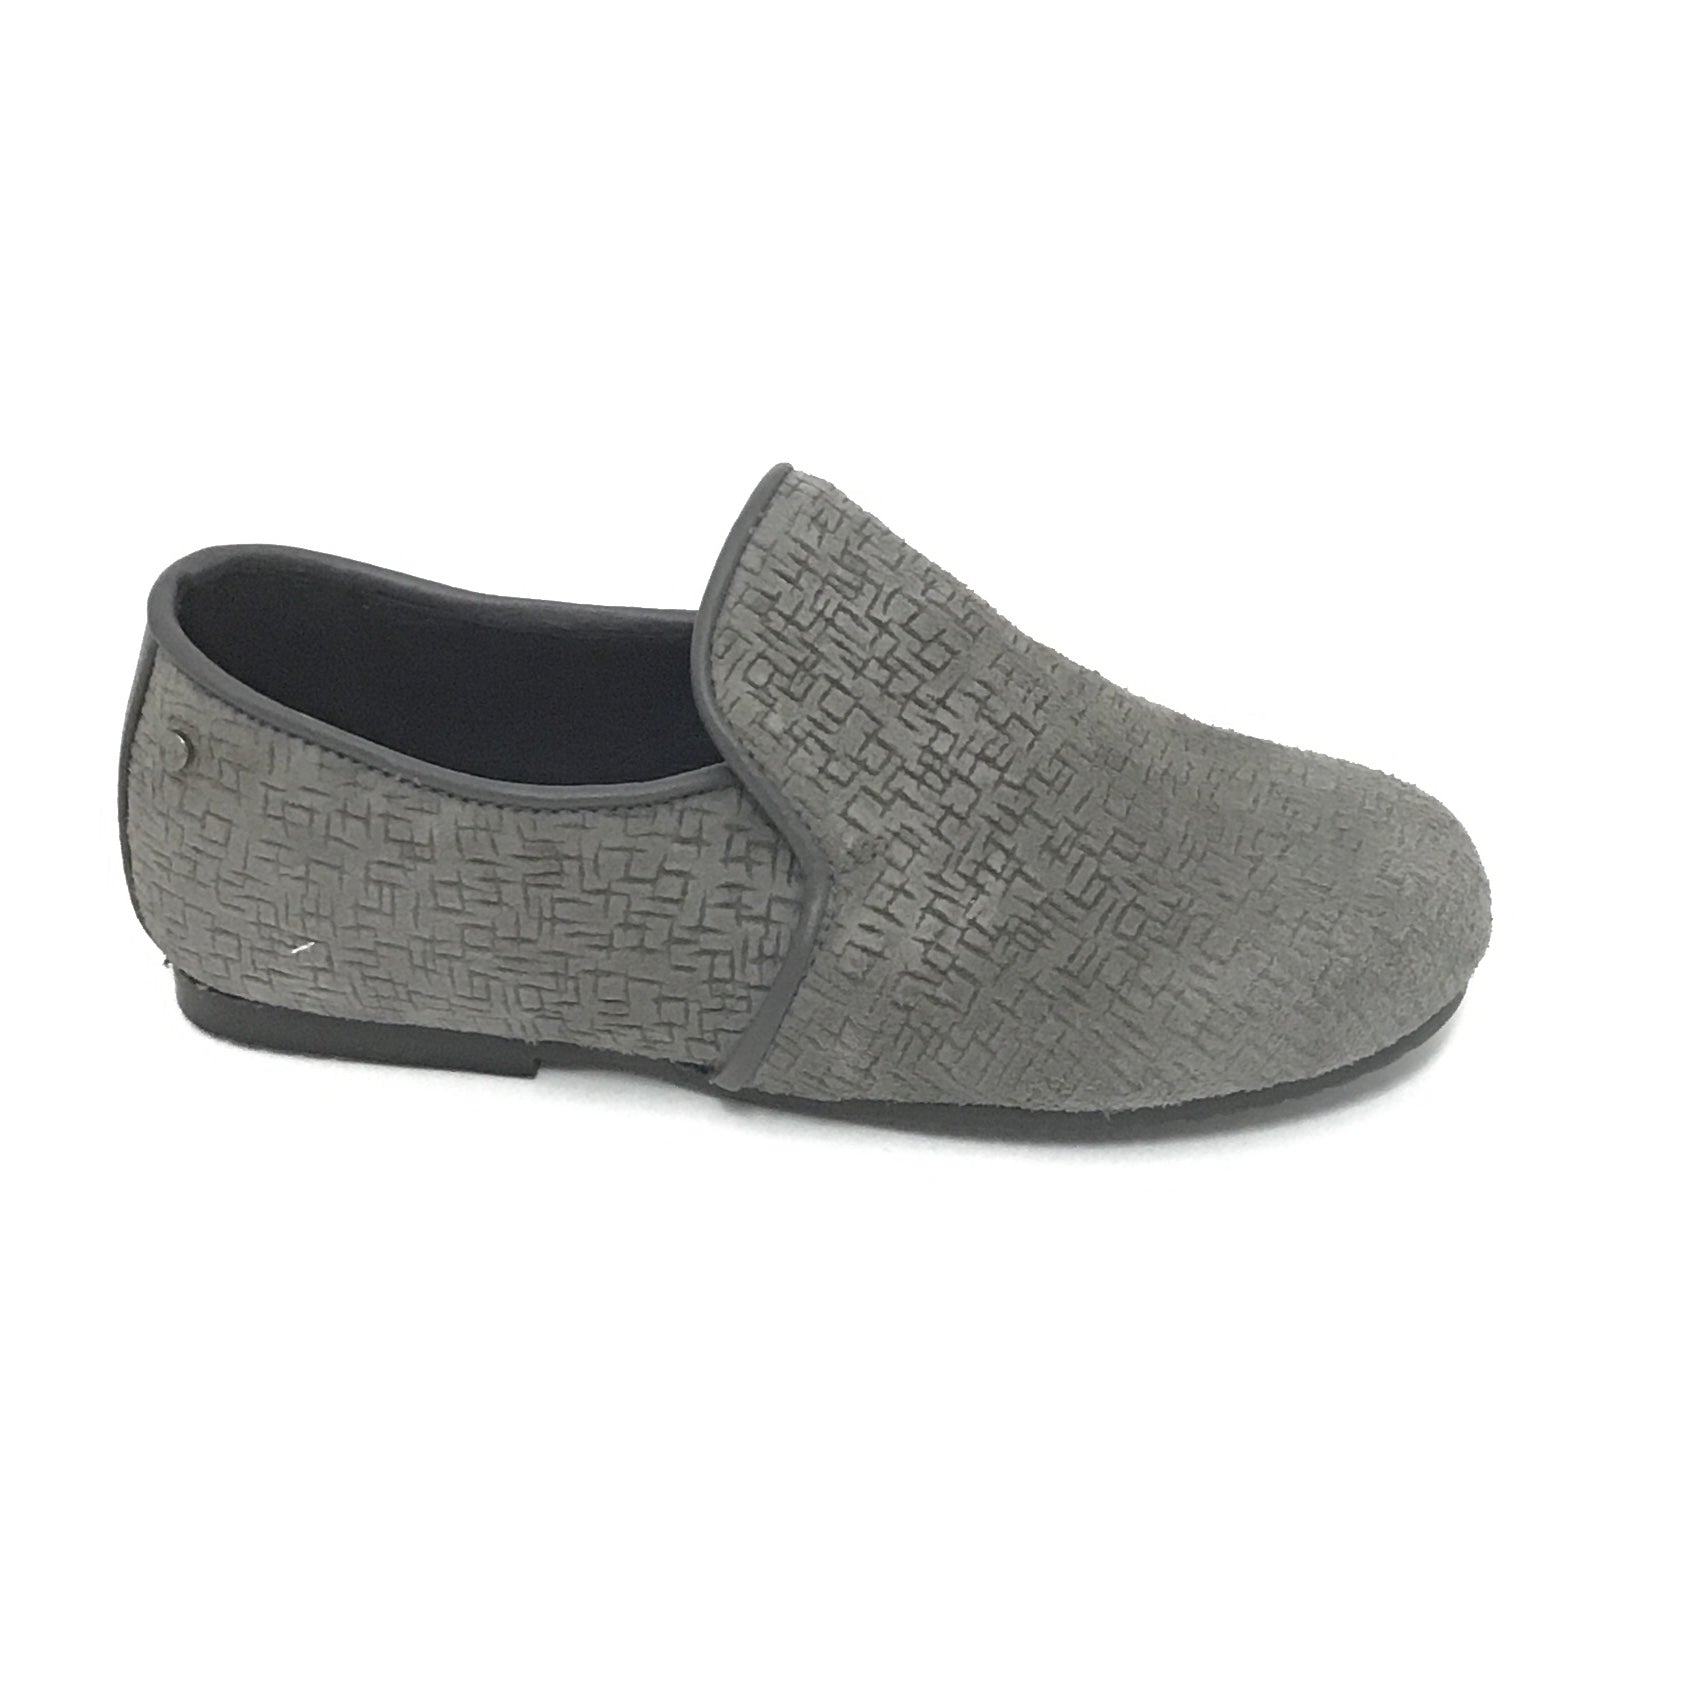 Manuela de Juan Gray Textured Slip On